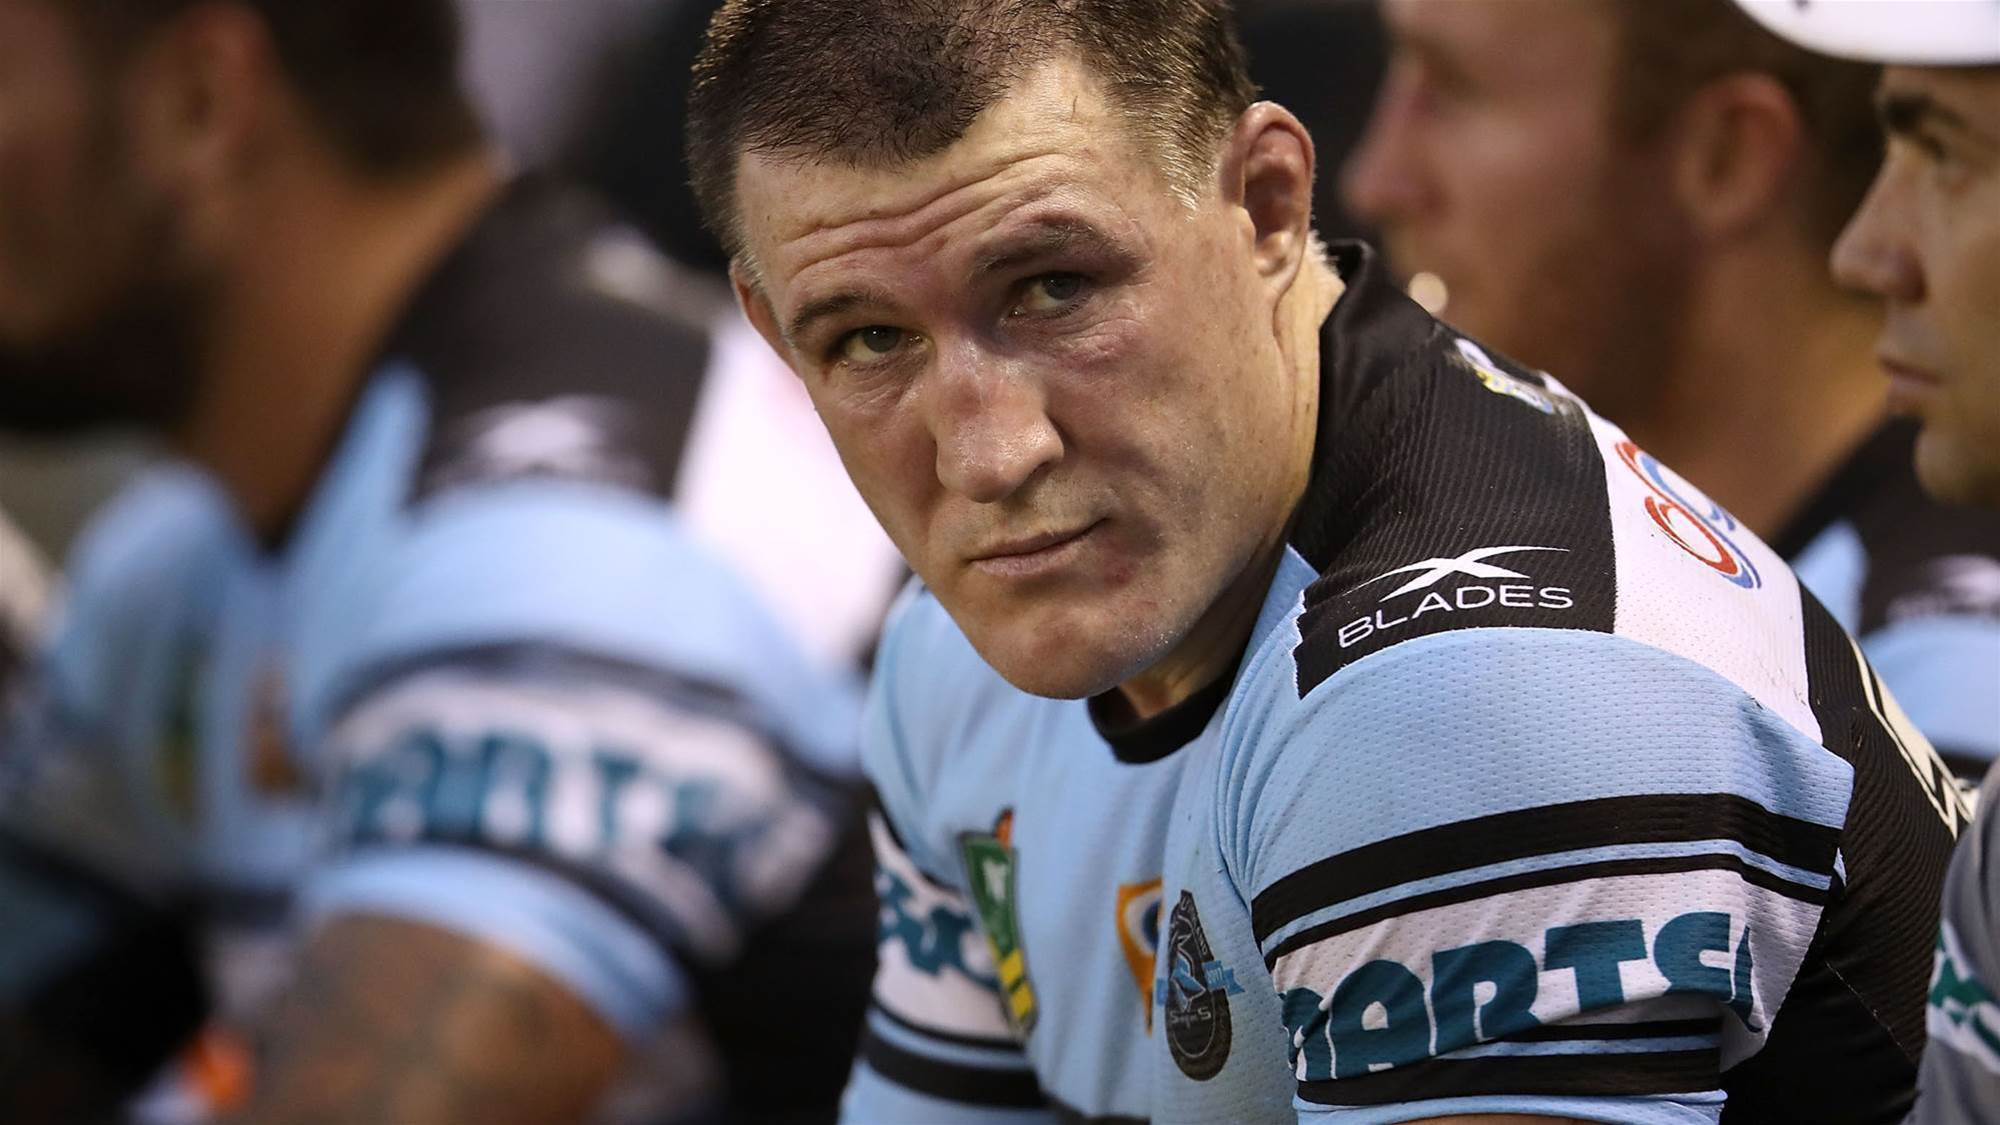 Gallen's brother banned for doping